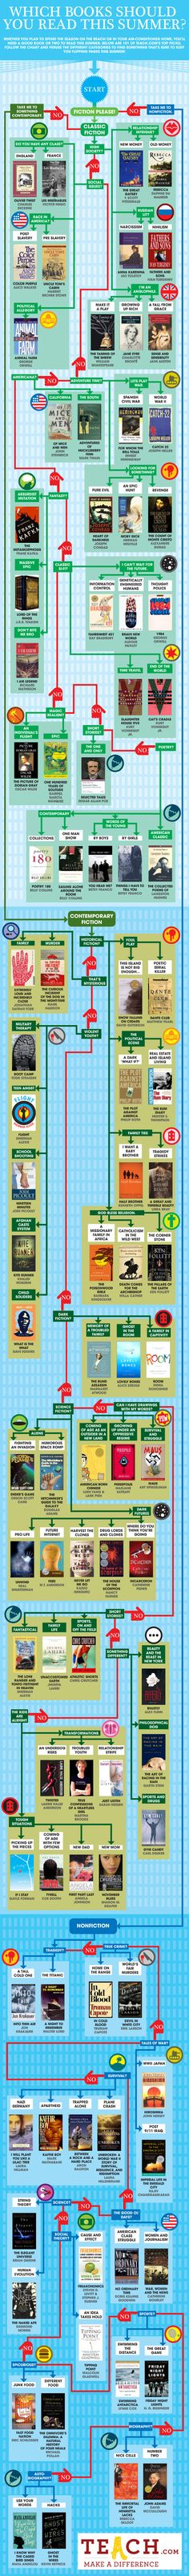 What should you be reading this summer? LOVE THIS! #infographic